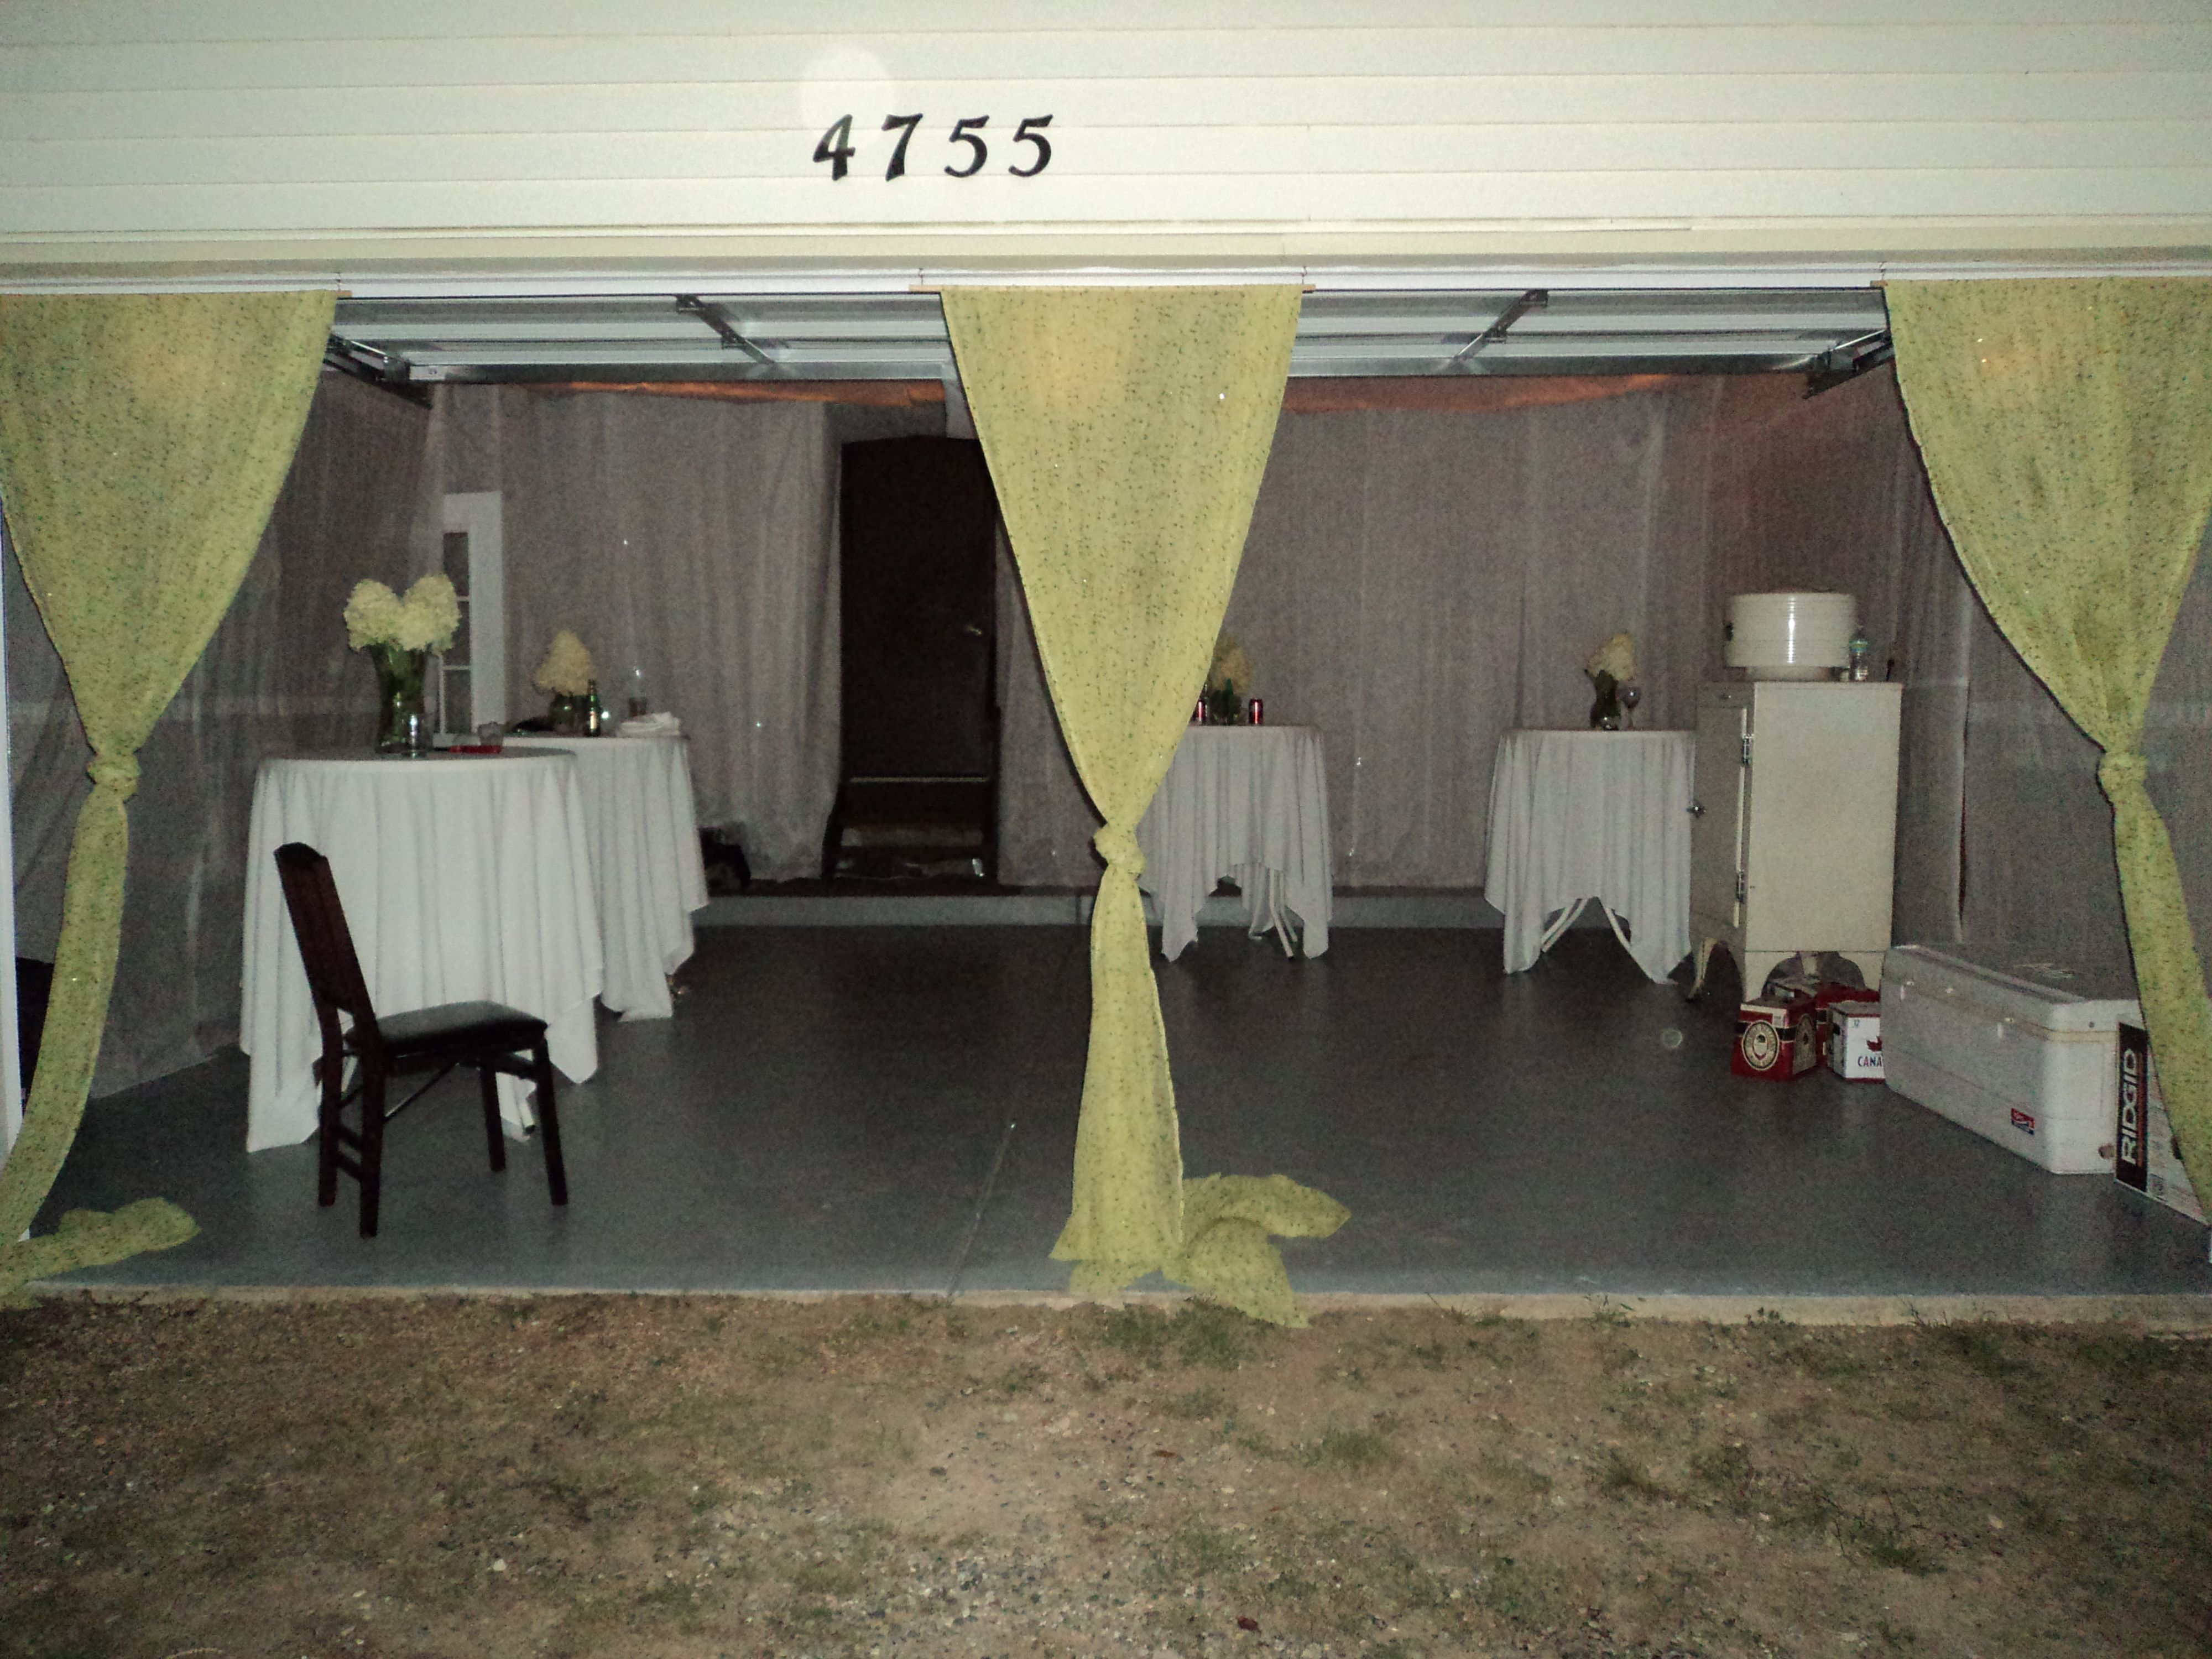 Turned Our Garage Into A Dance Floor For Backyard Wedding Reception Lined Ceiling And Walls With Lacy Disposable Table Cloths